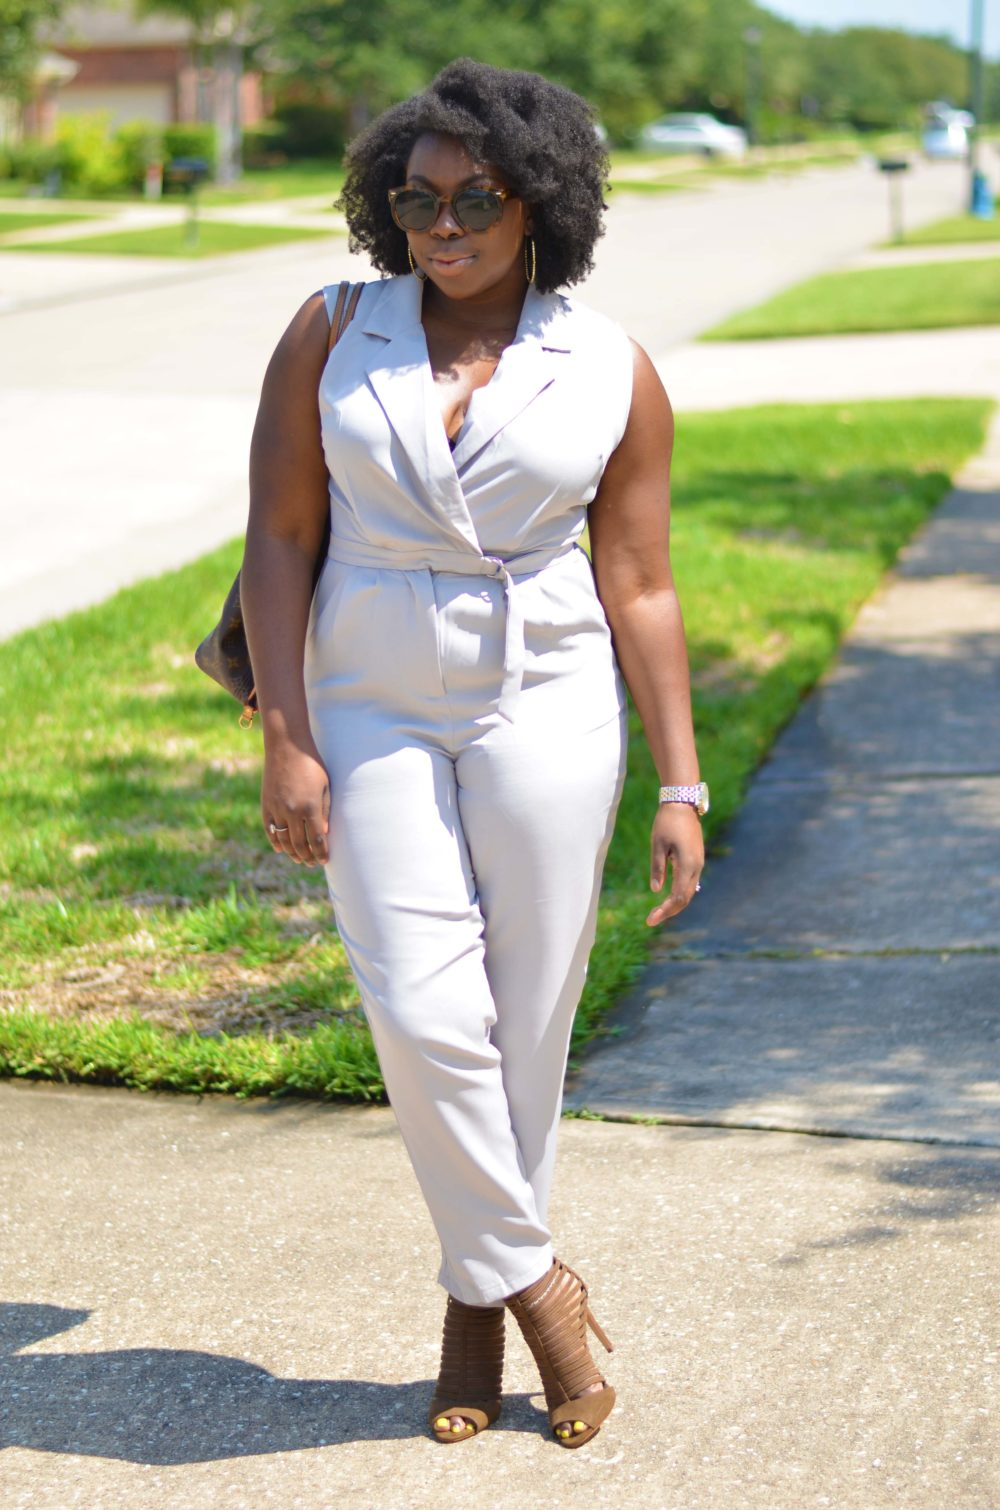 Neutral November outfit tan jumpsuit